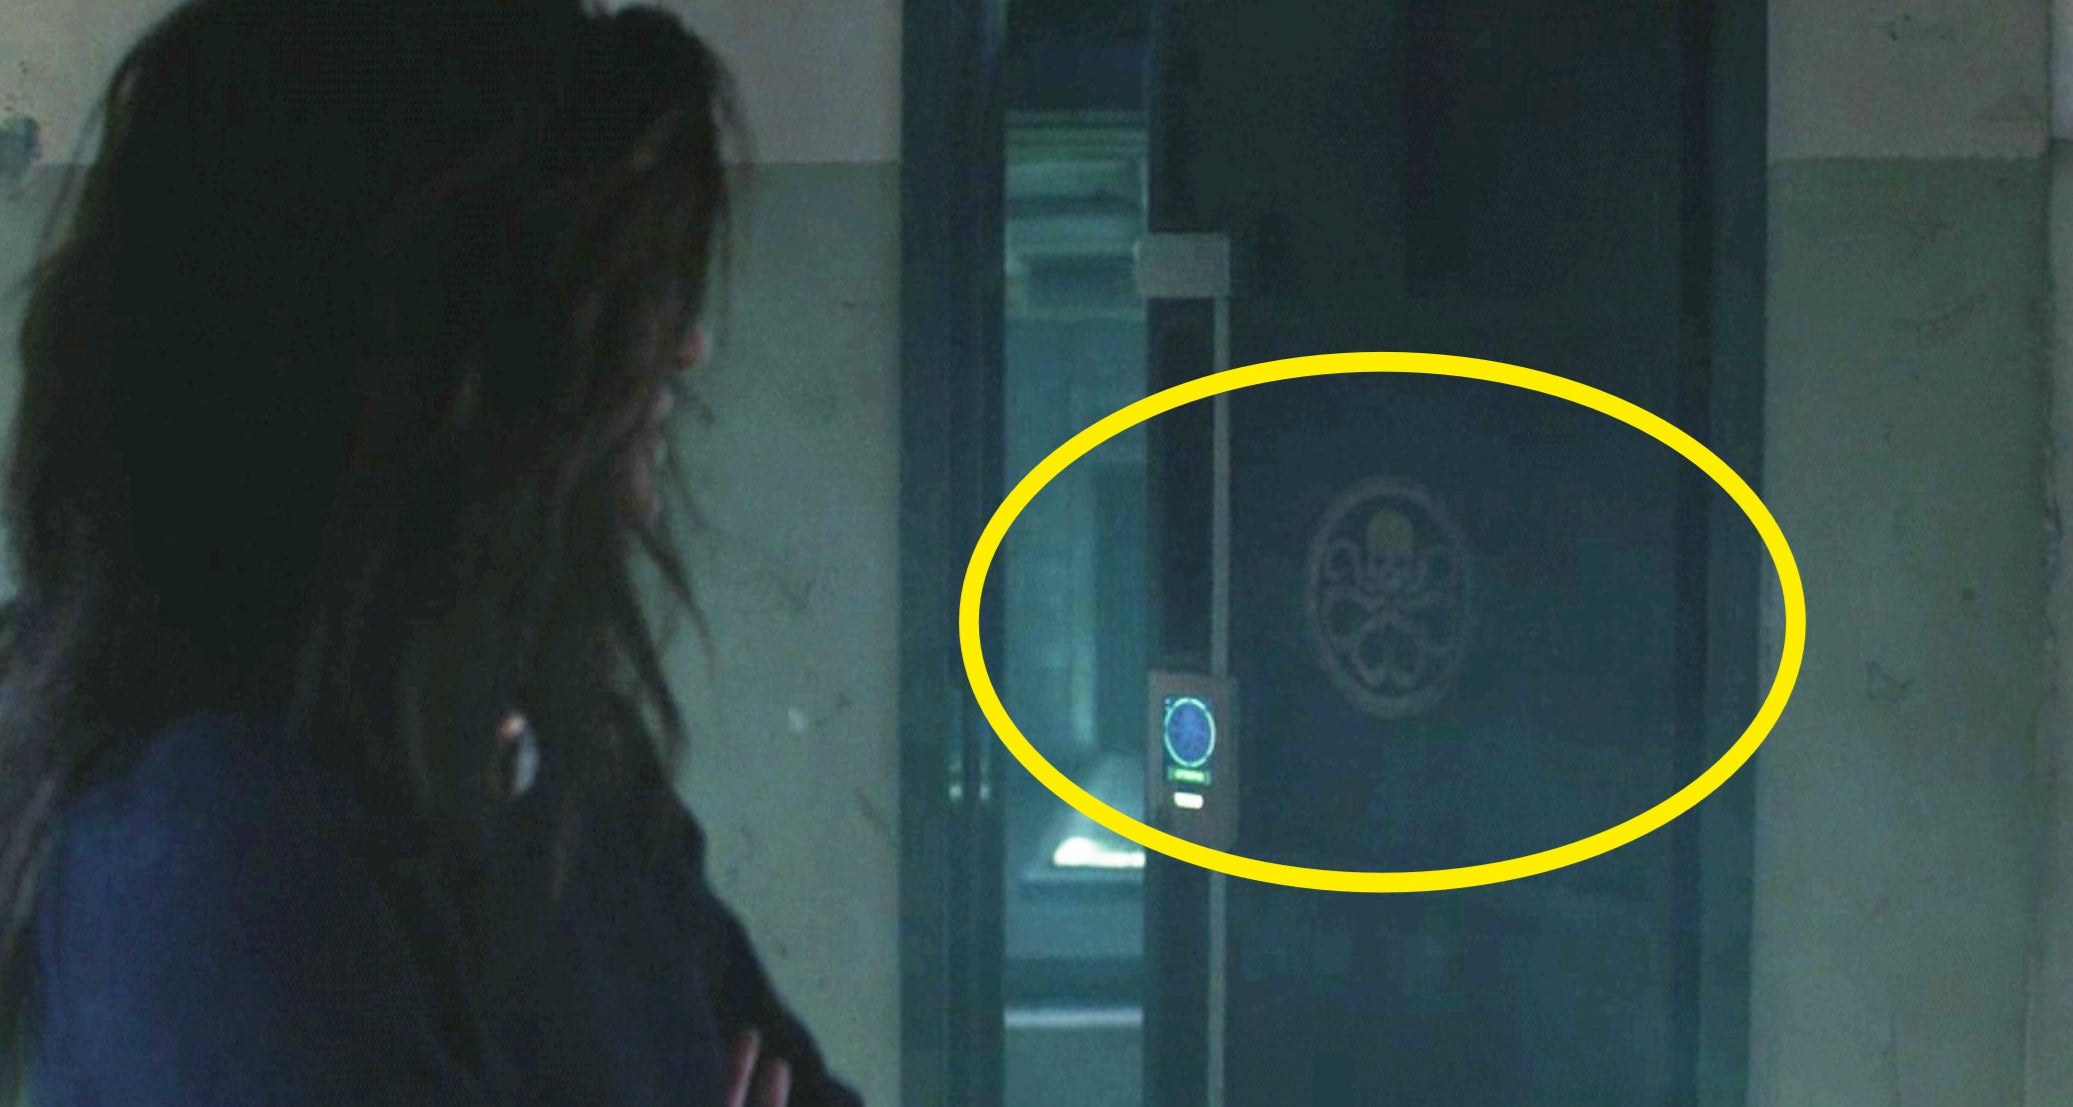 A circle around the HYDRA logo on a door